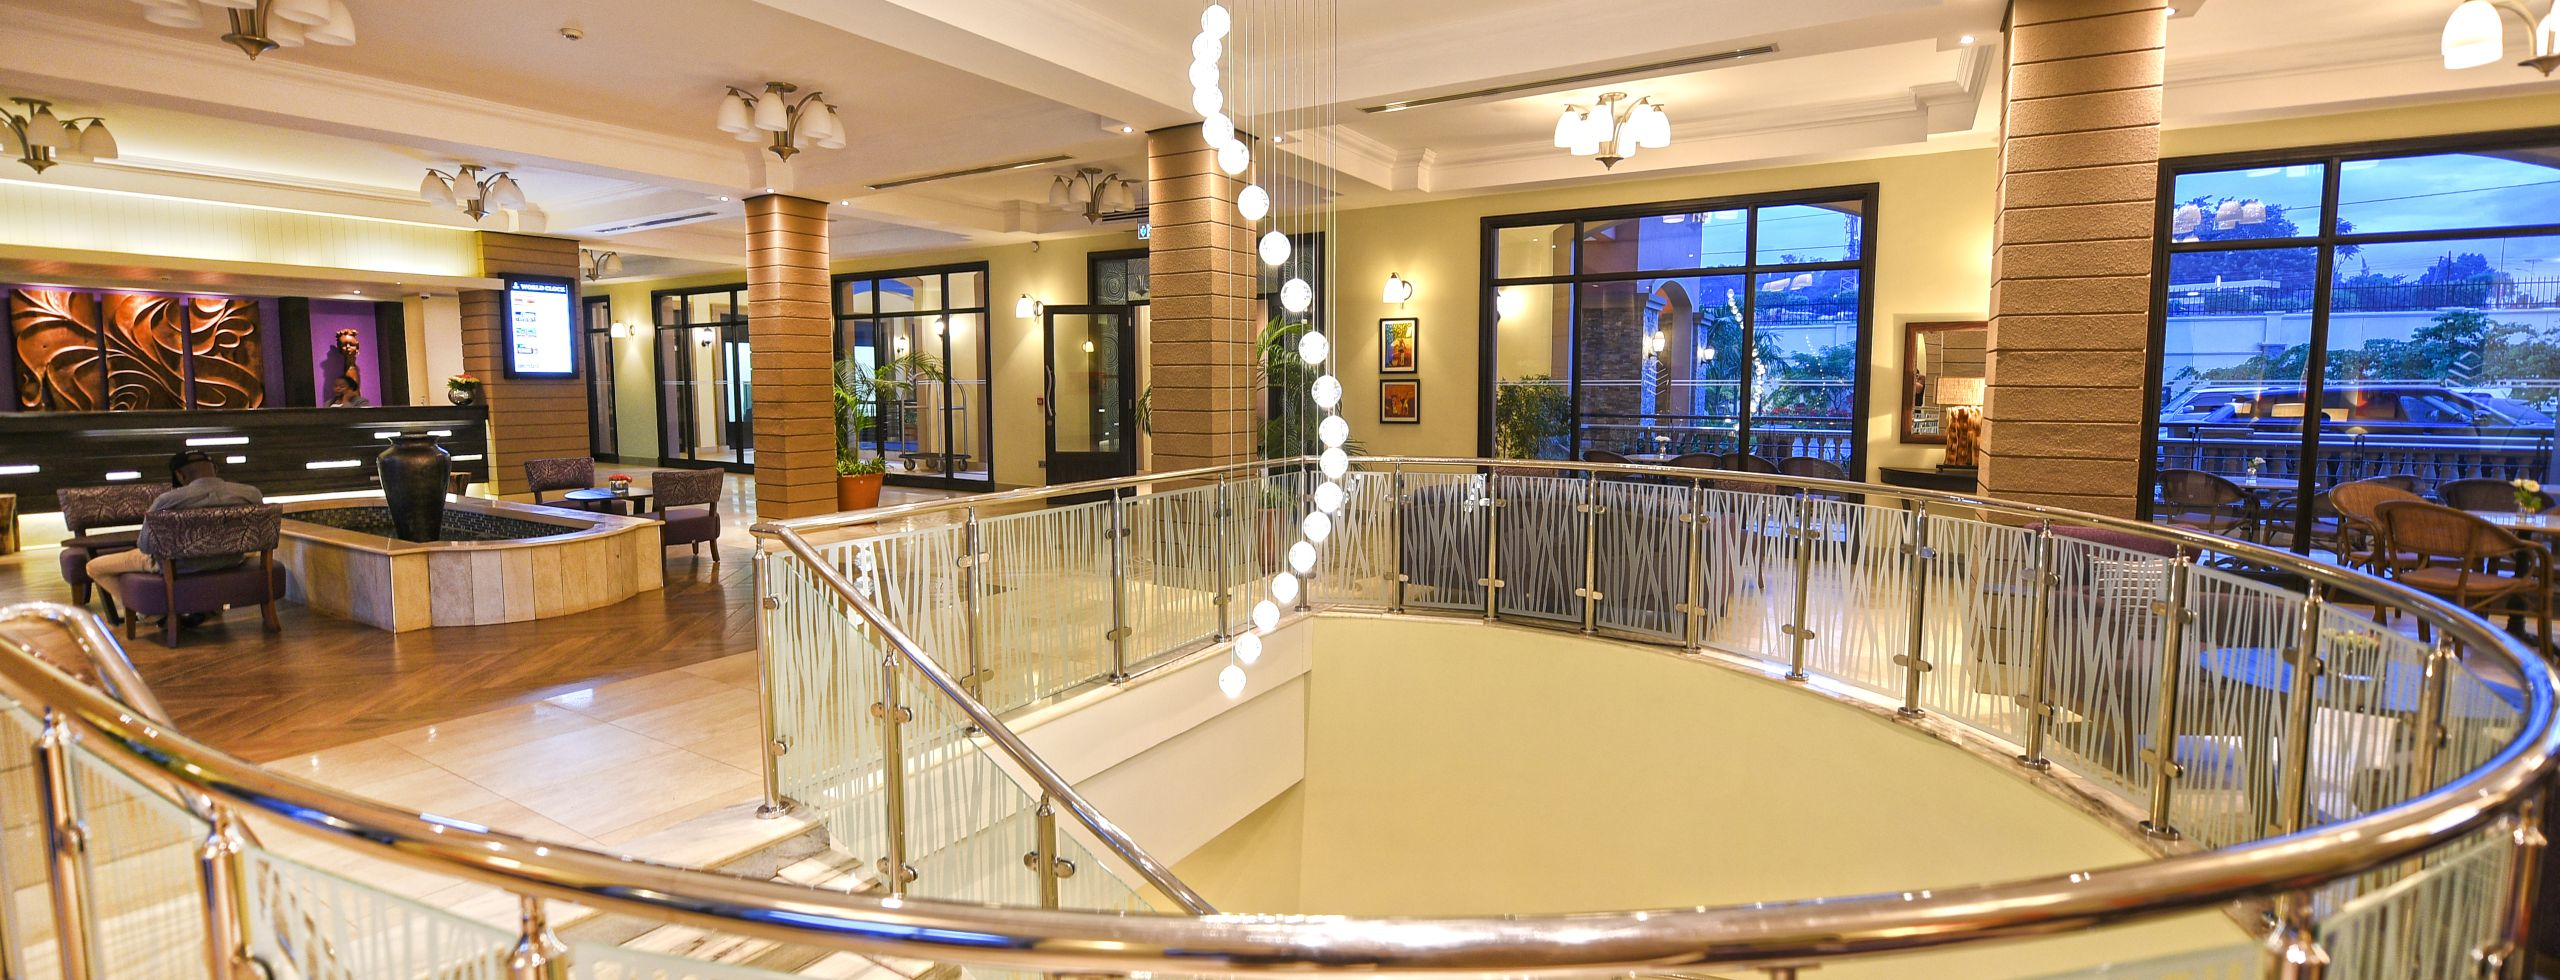 Homepage: Staircase in reception